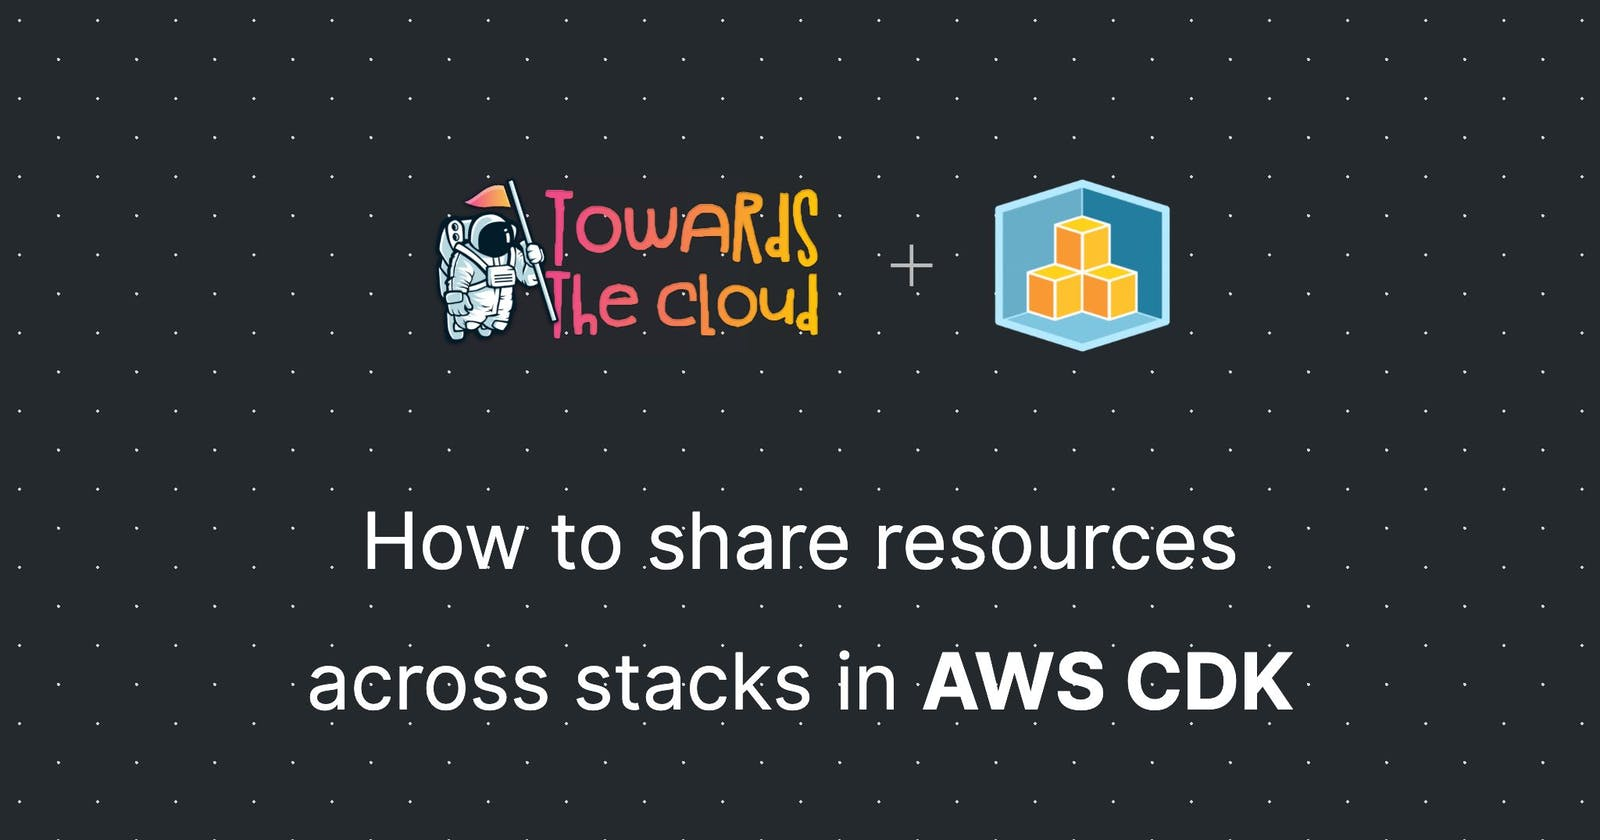 How to share resources across stacks in AWS CDK